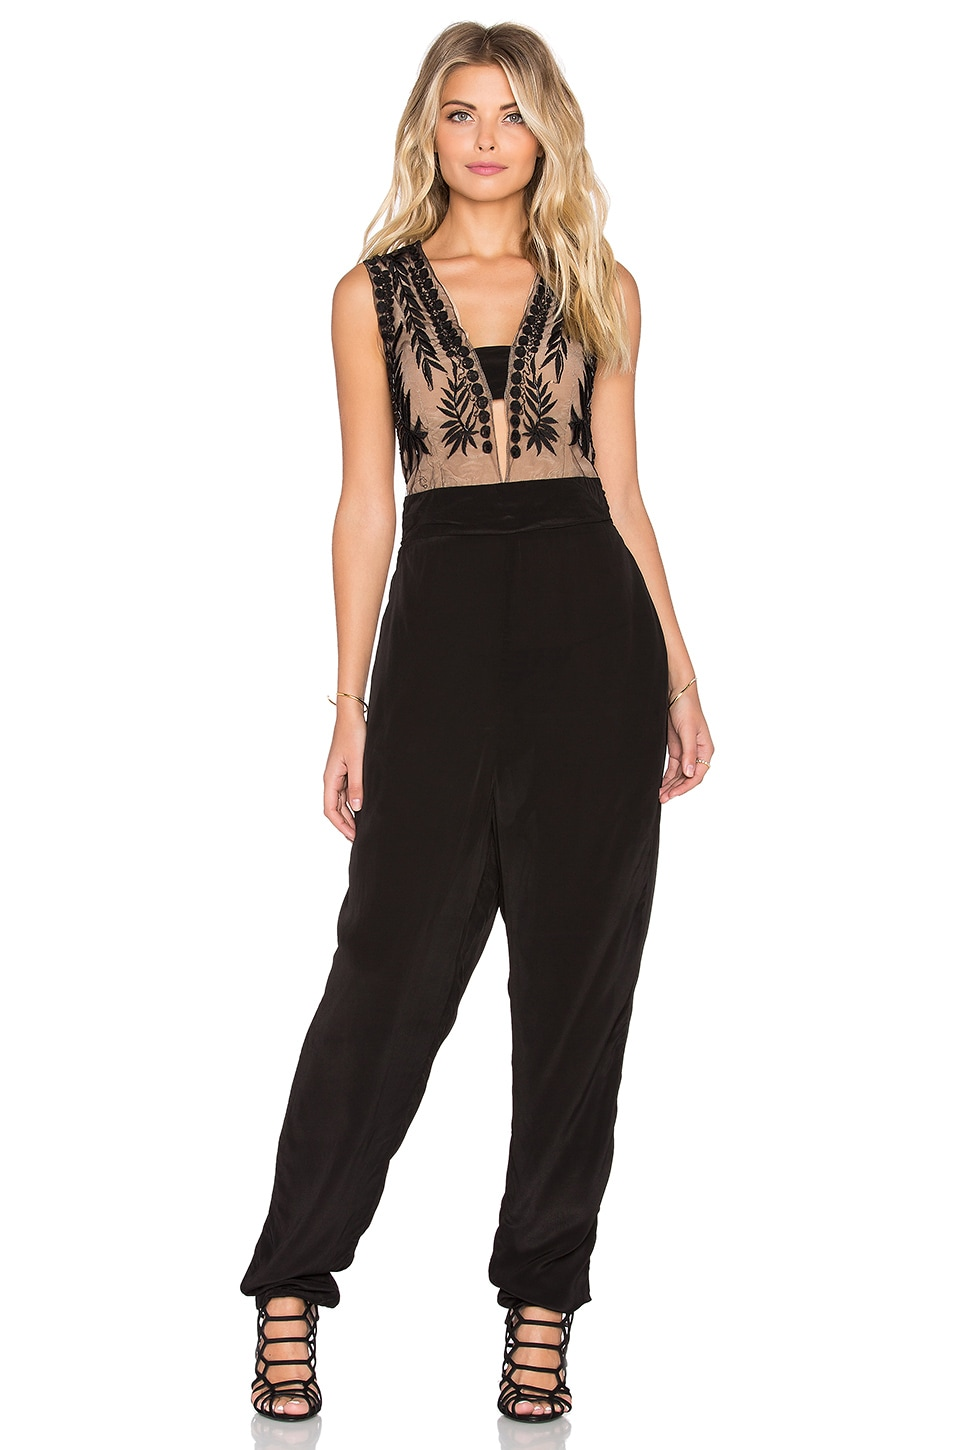 Chloe Oliver The Evening Mist Jumpsuit in Black